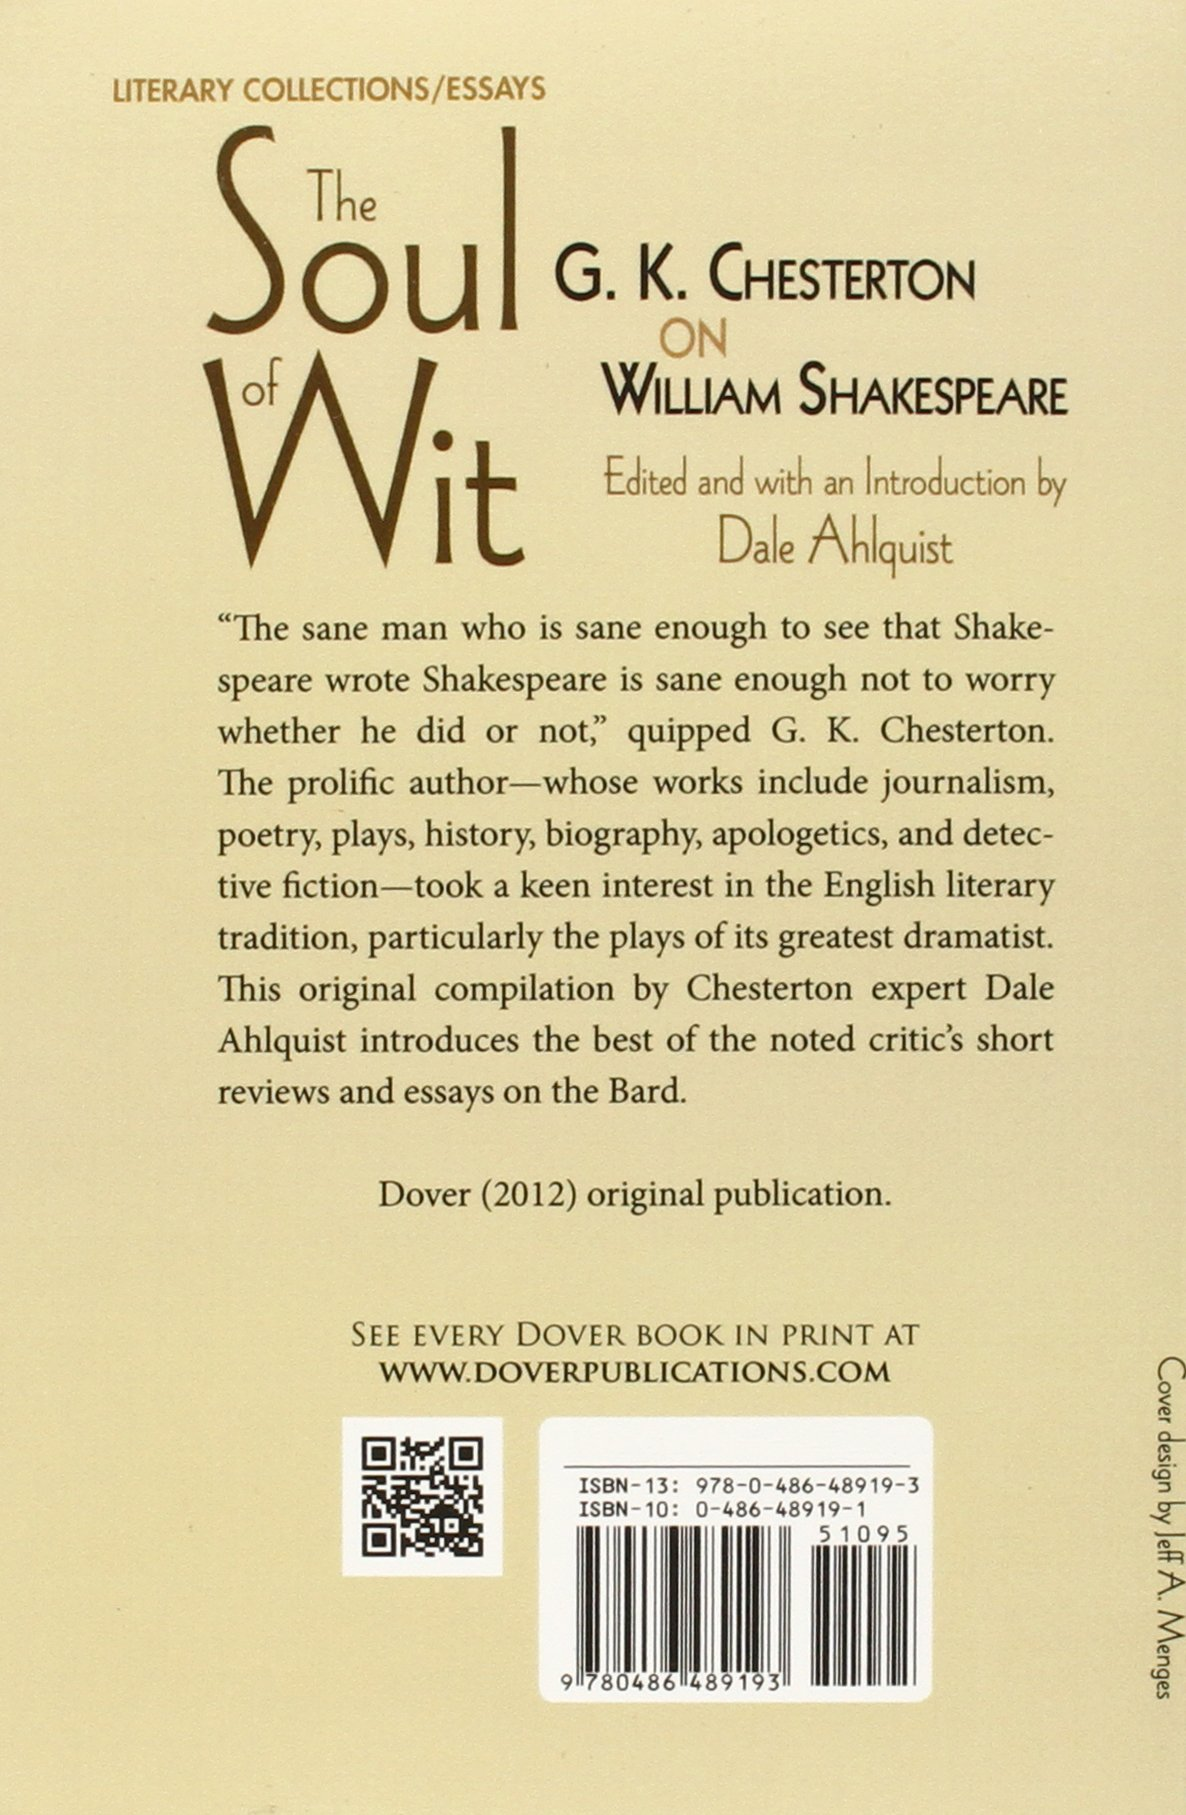 com the soul of wit g k chesterton on william  com the soul of wit g k chesterton on william shakespeare dover books on literature drama 9780486489193 g k chesterton dale ahlquist